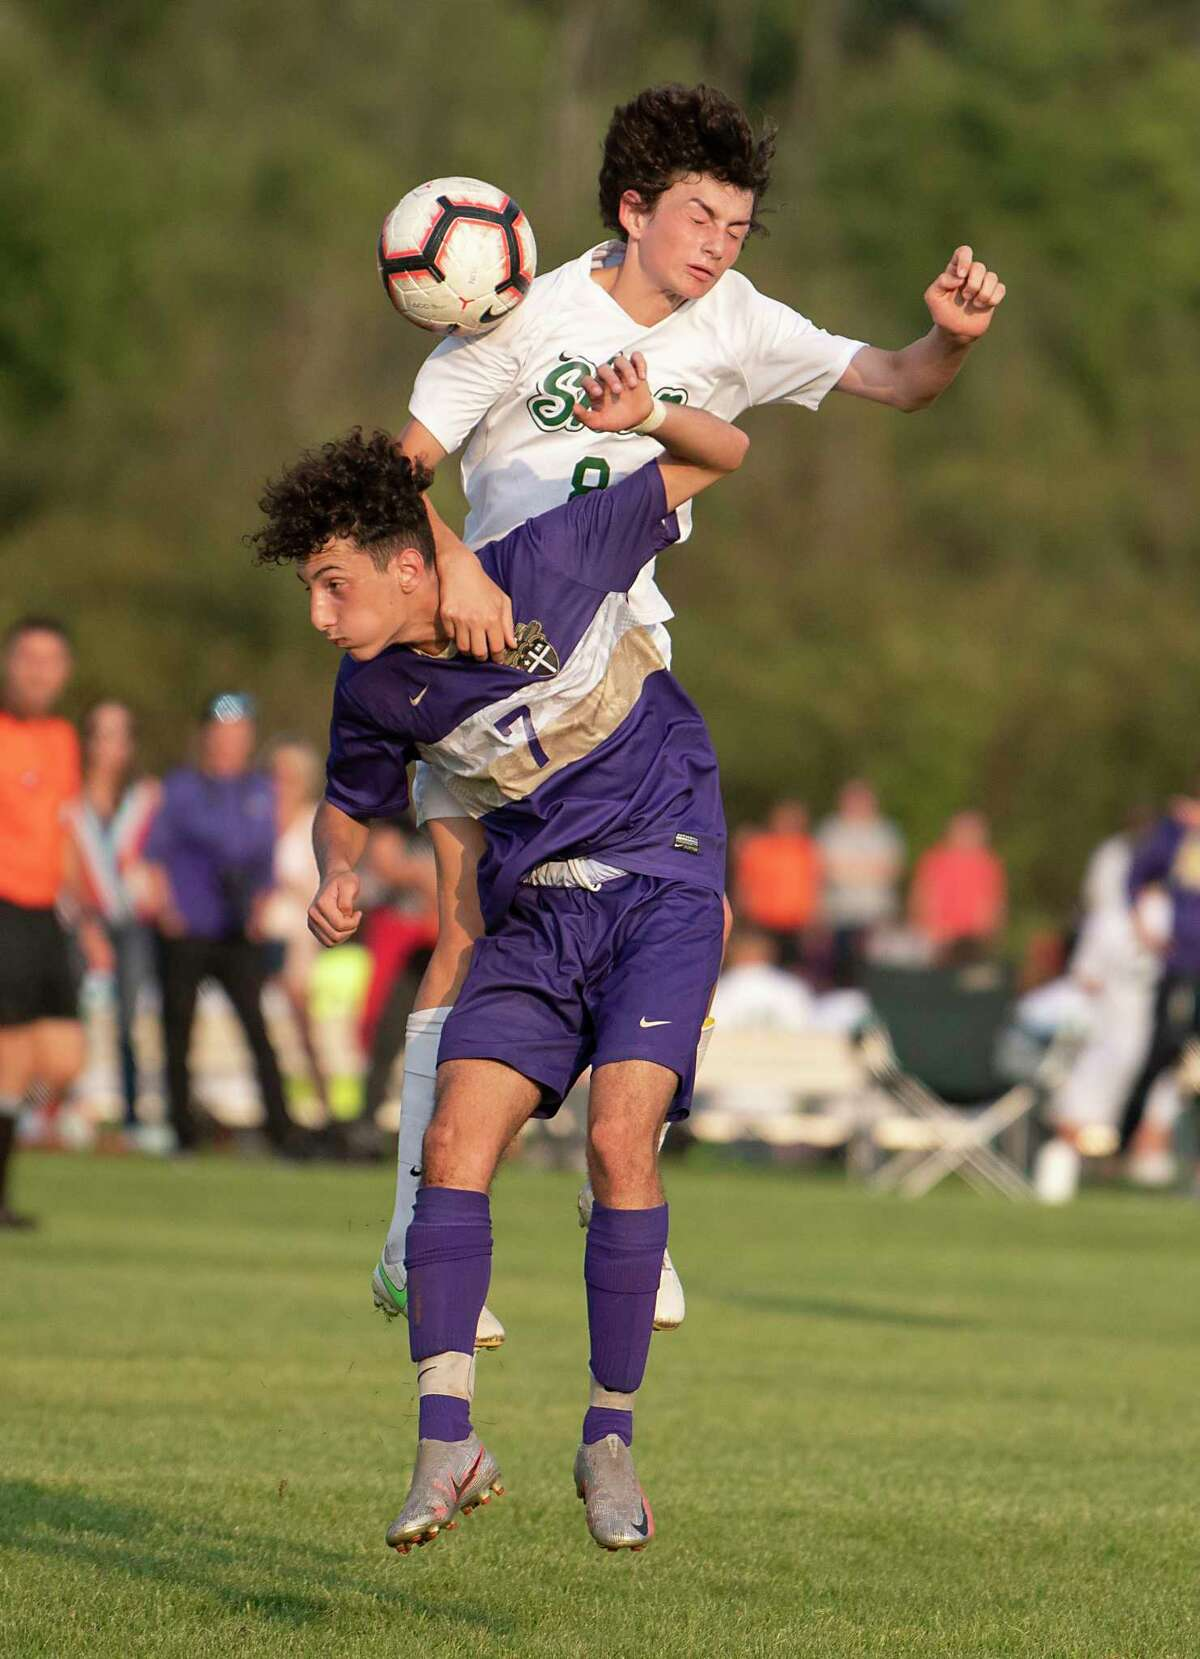 Christian Brothers Academy's Eric Najtellari, bottom, battles for the ball against Shenendehowa's Massi Bruno during a soccer game on Tuesday, Sept. 14, 2021 in Colonie, N.Y.